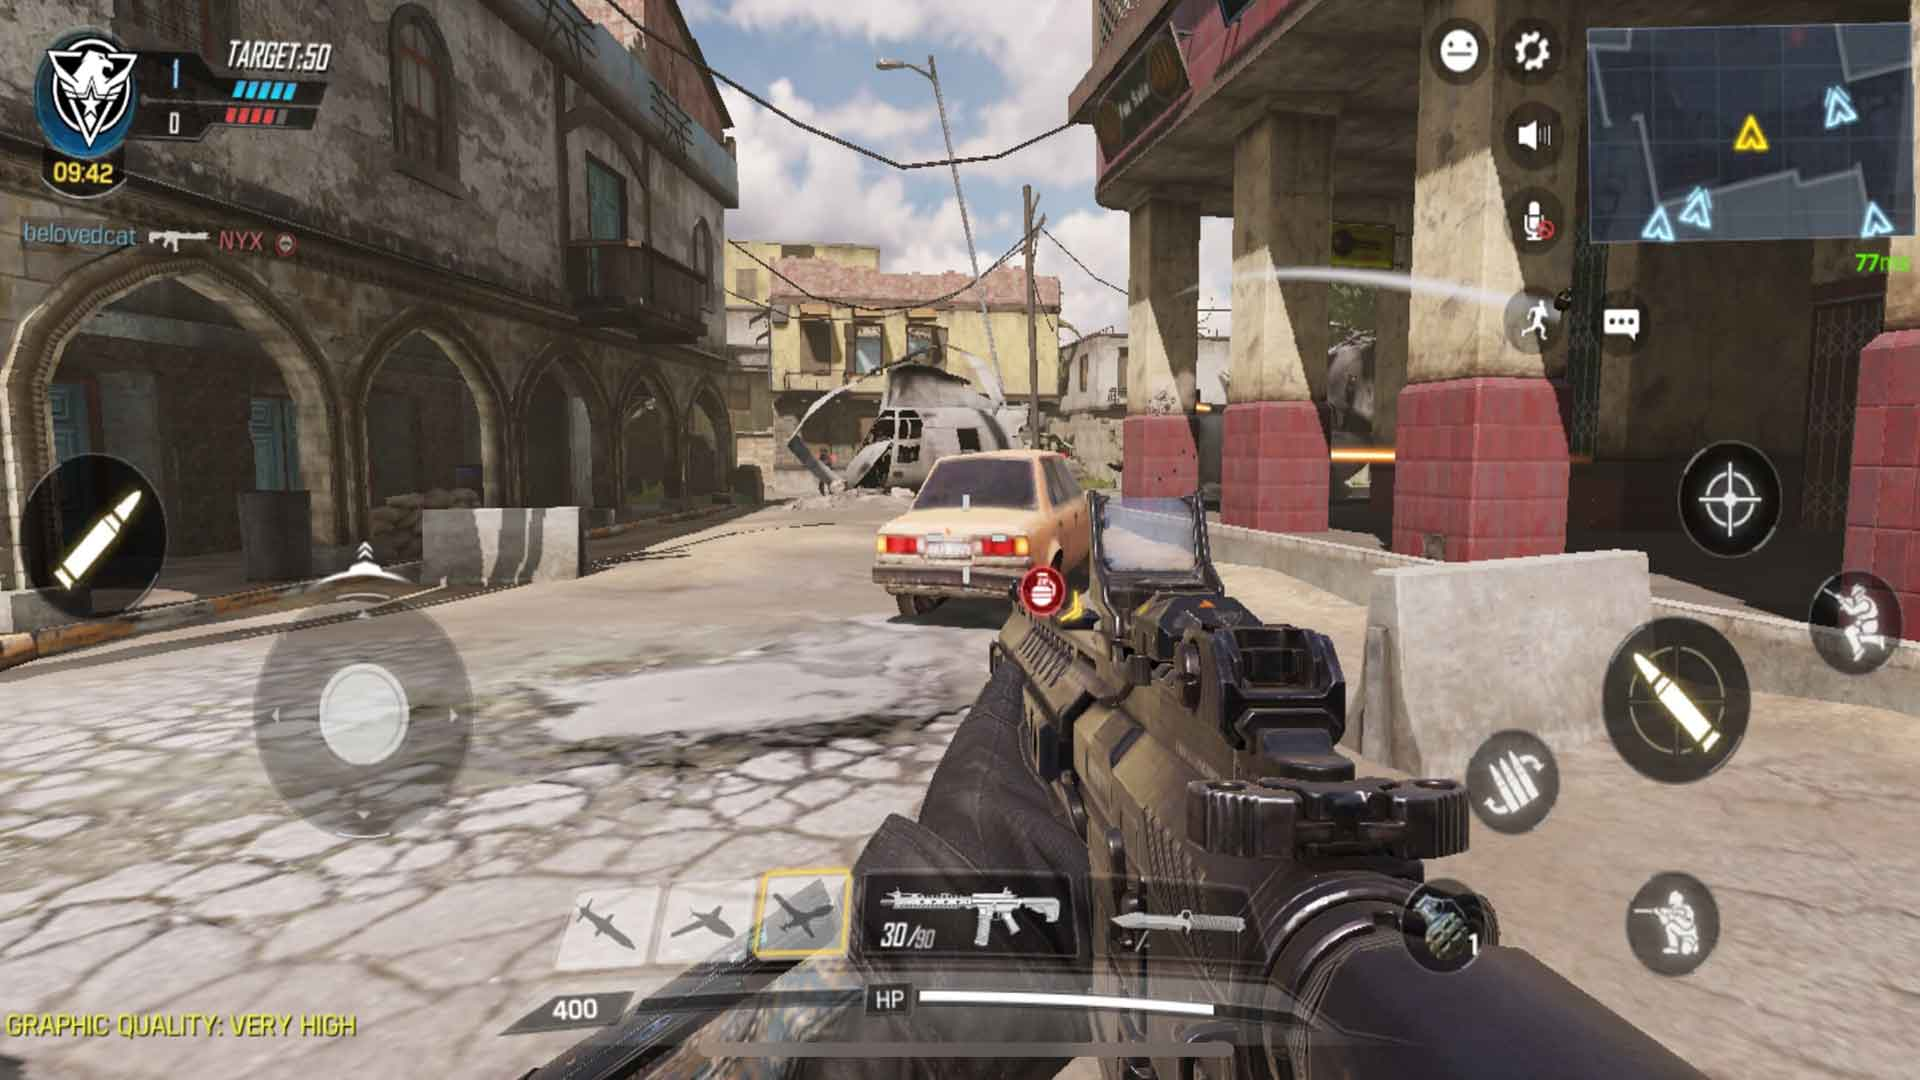 скачать call of duty mobile